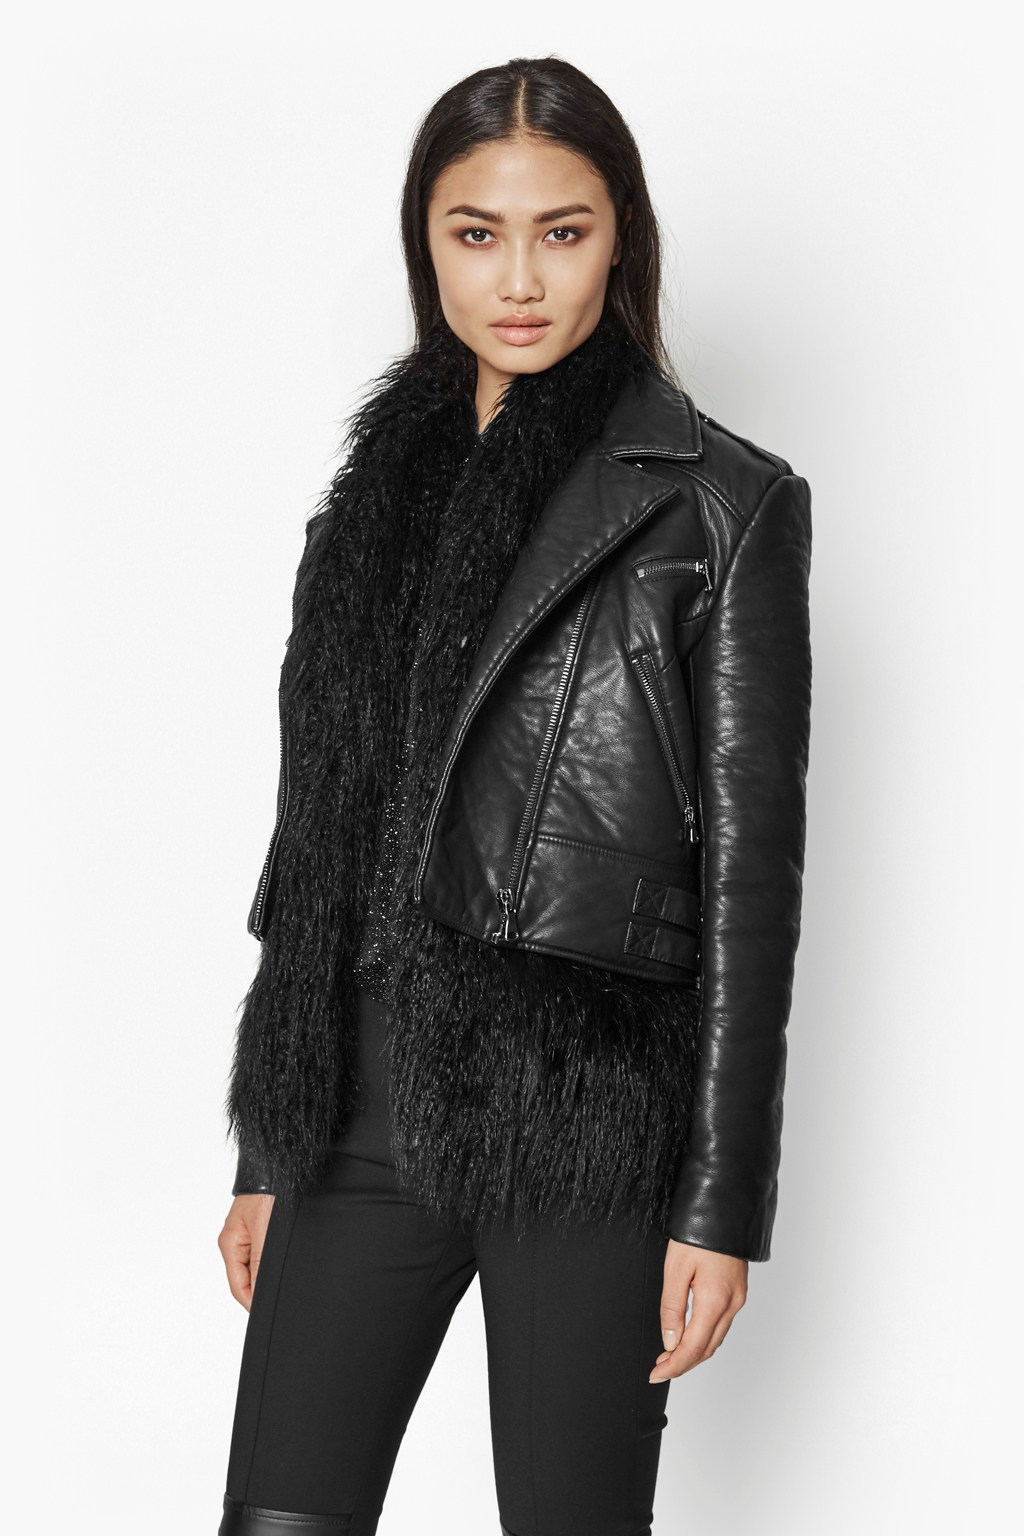 Leather Jackets With Fur - Jacket